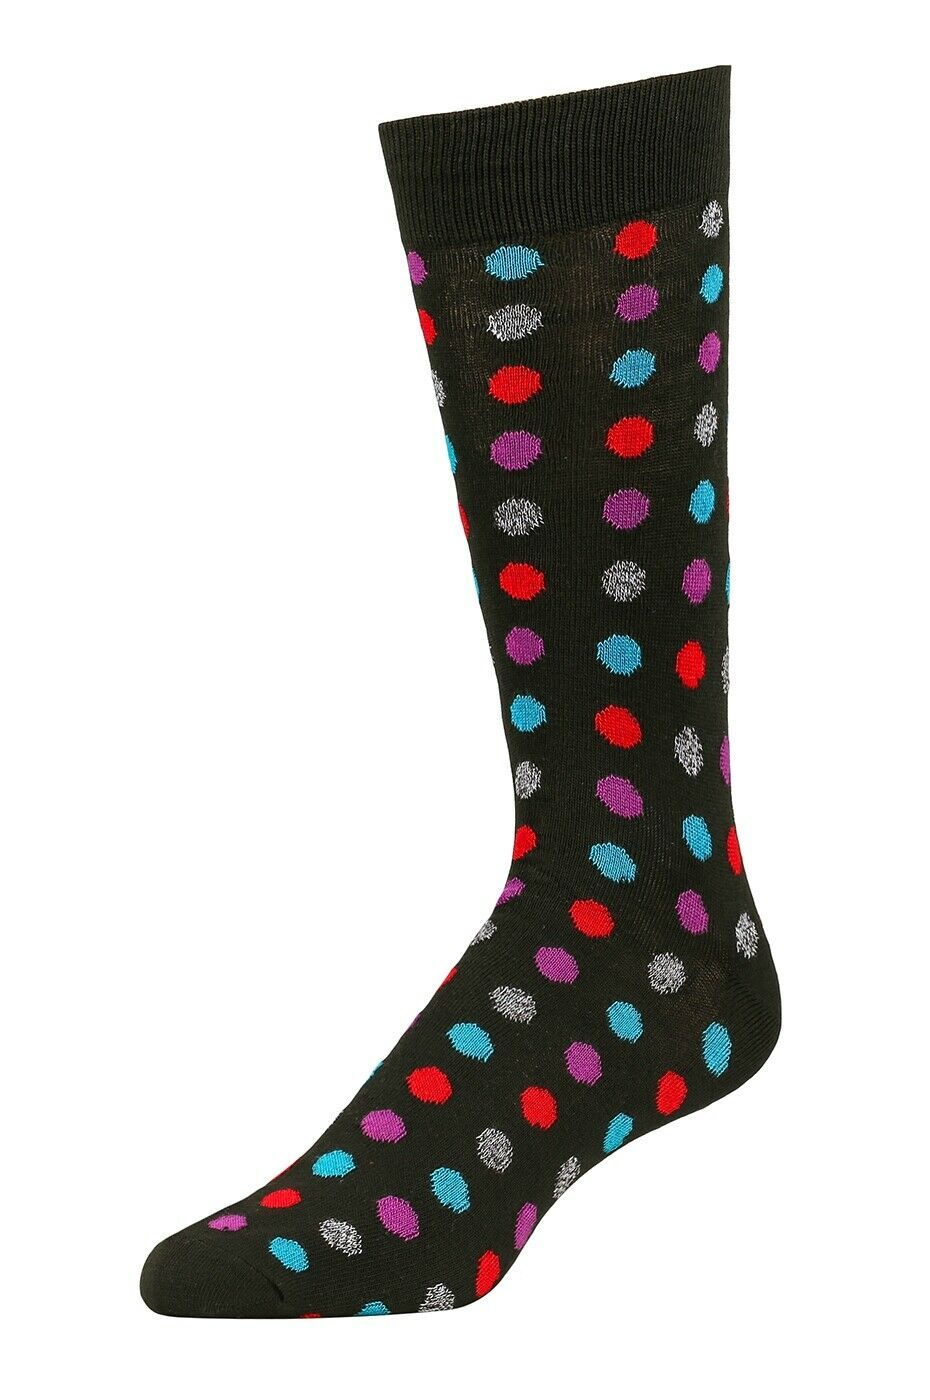 Primary image for Men's Dress Novelty Fashion Socks 1-3 Packs Polka Dots Funky Colors Size 10-13